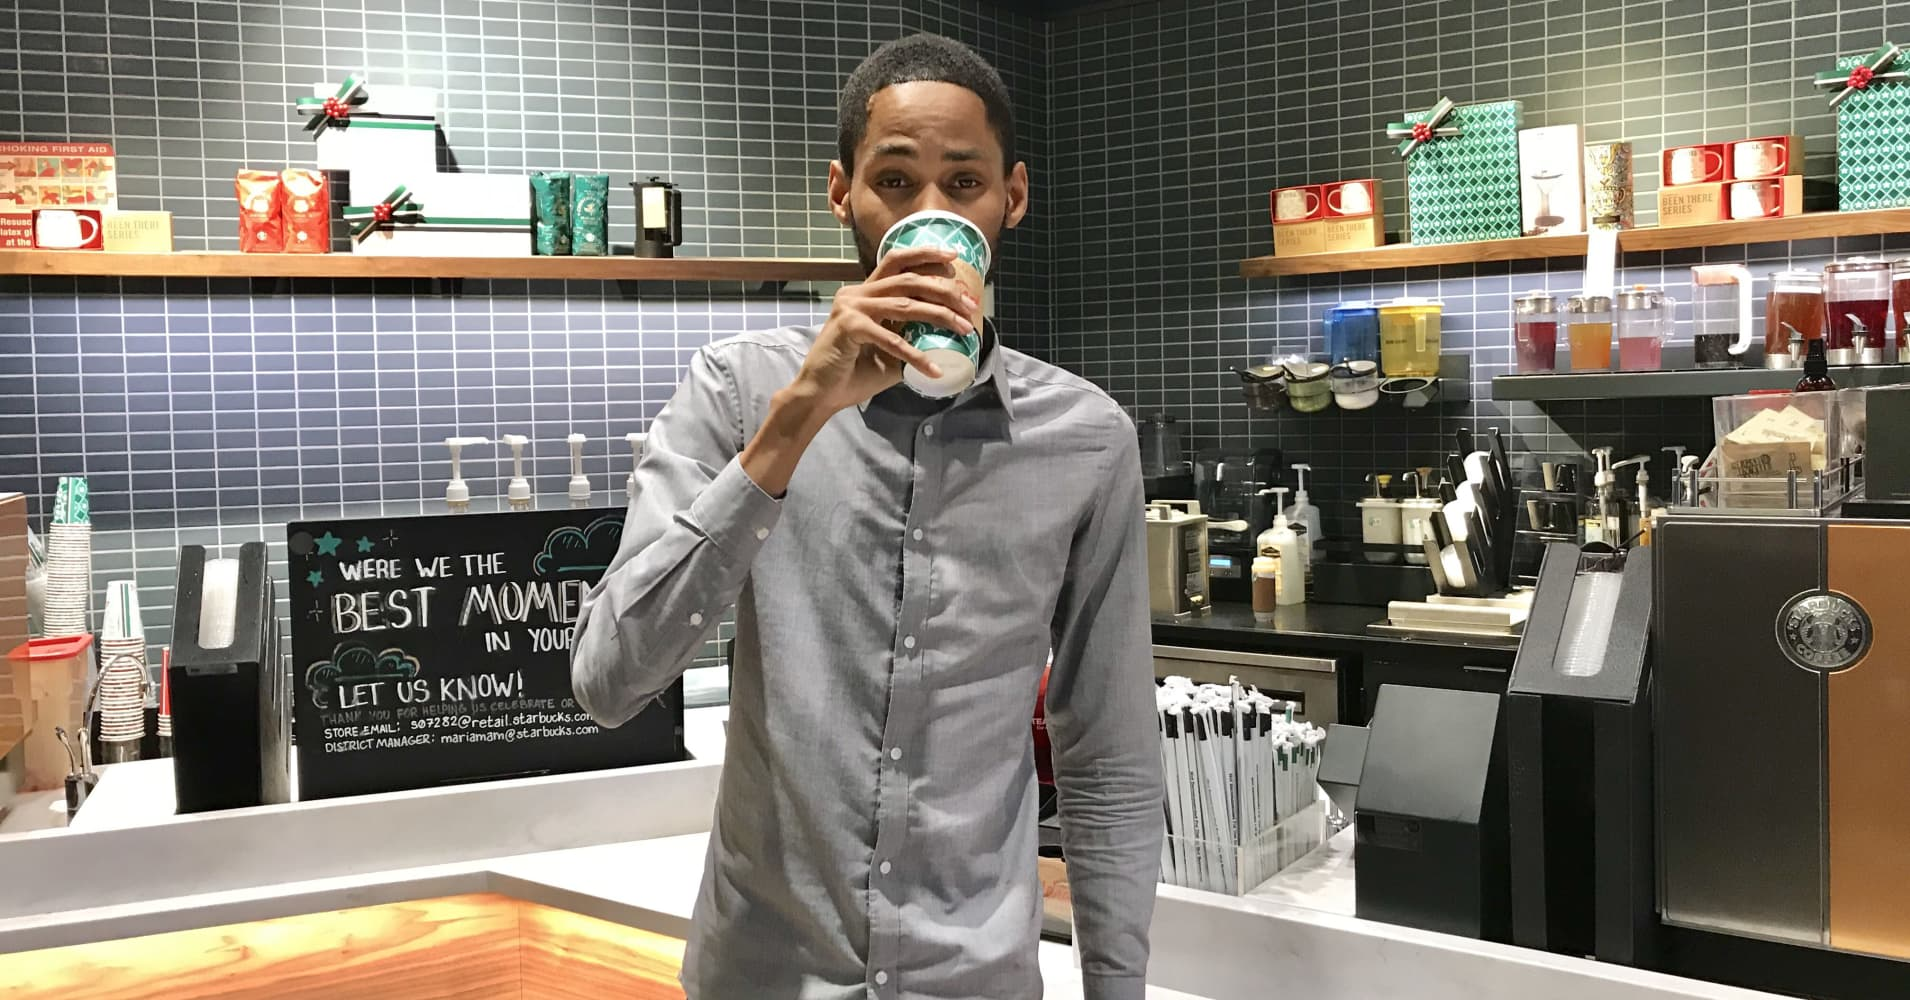 My daily Starbucks habit costs me $2,300 a year—here's why I refuse to stop